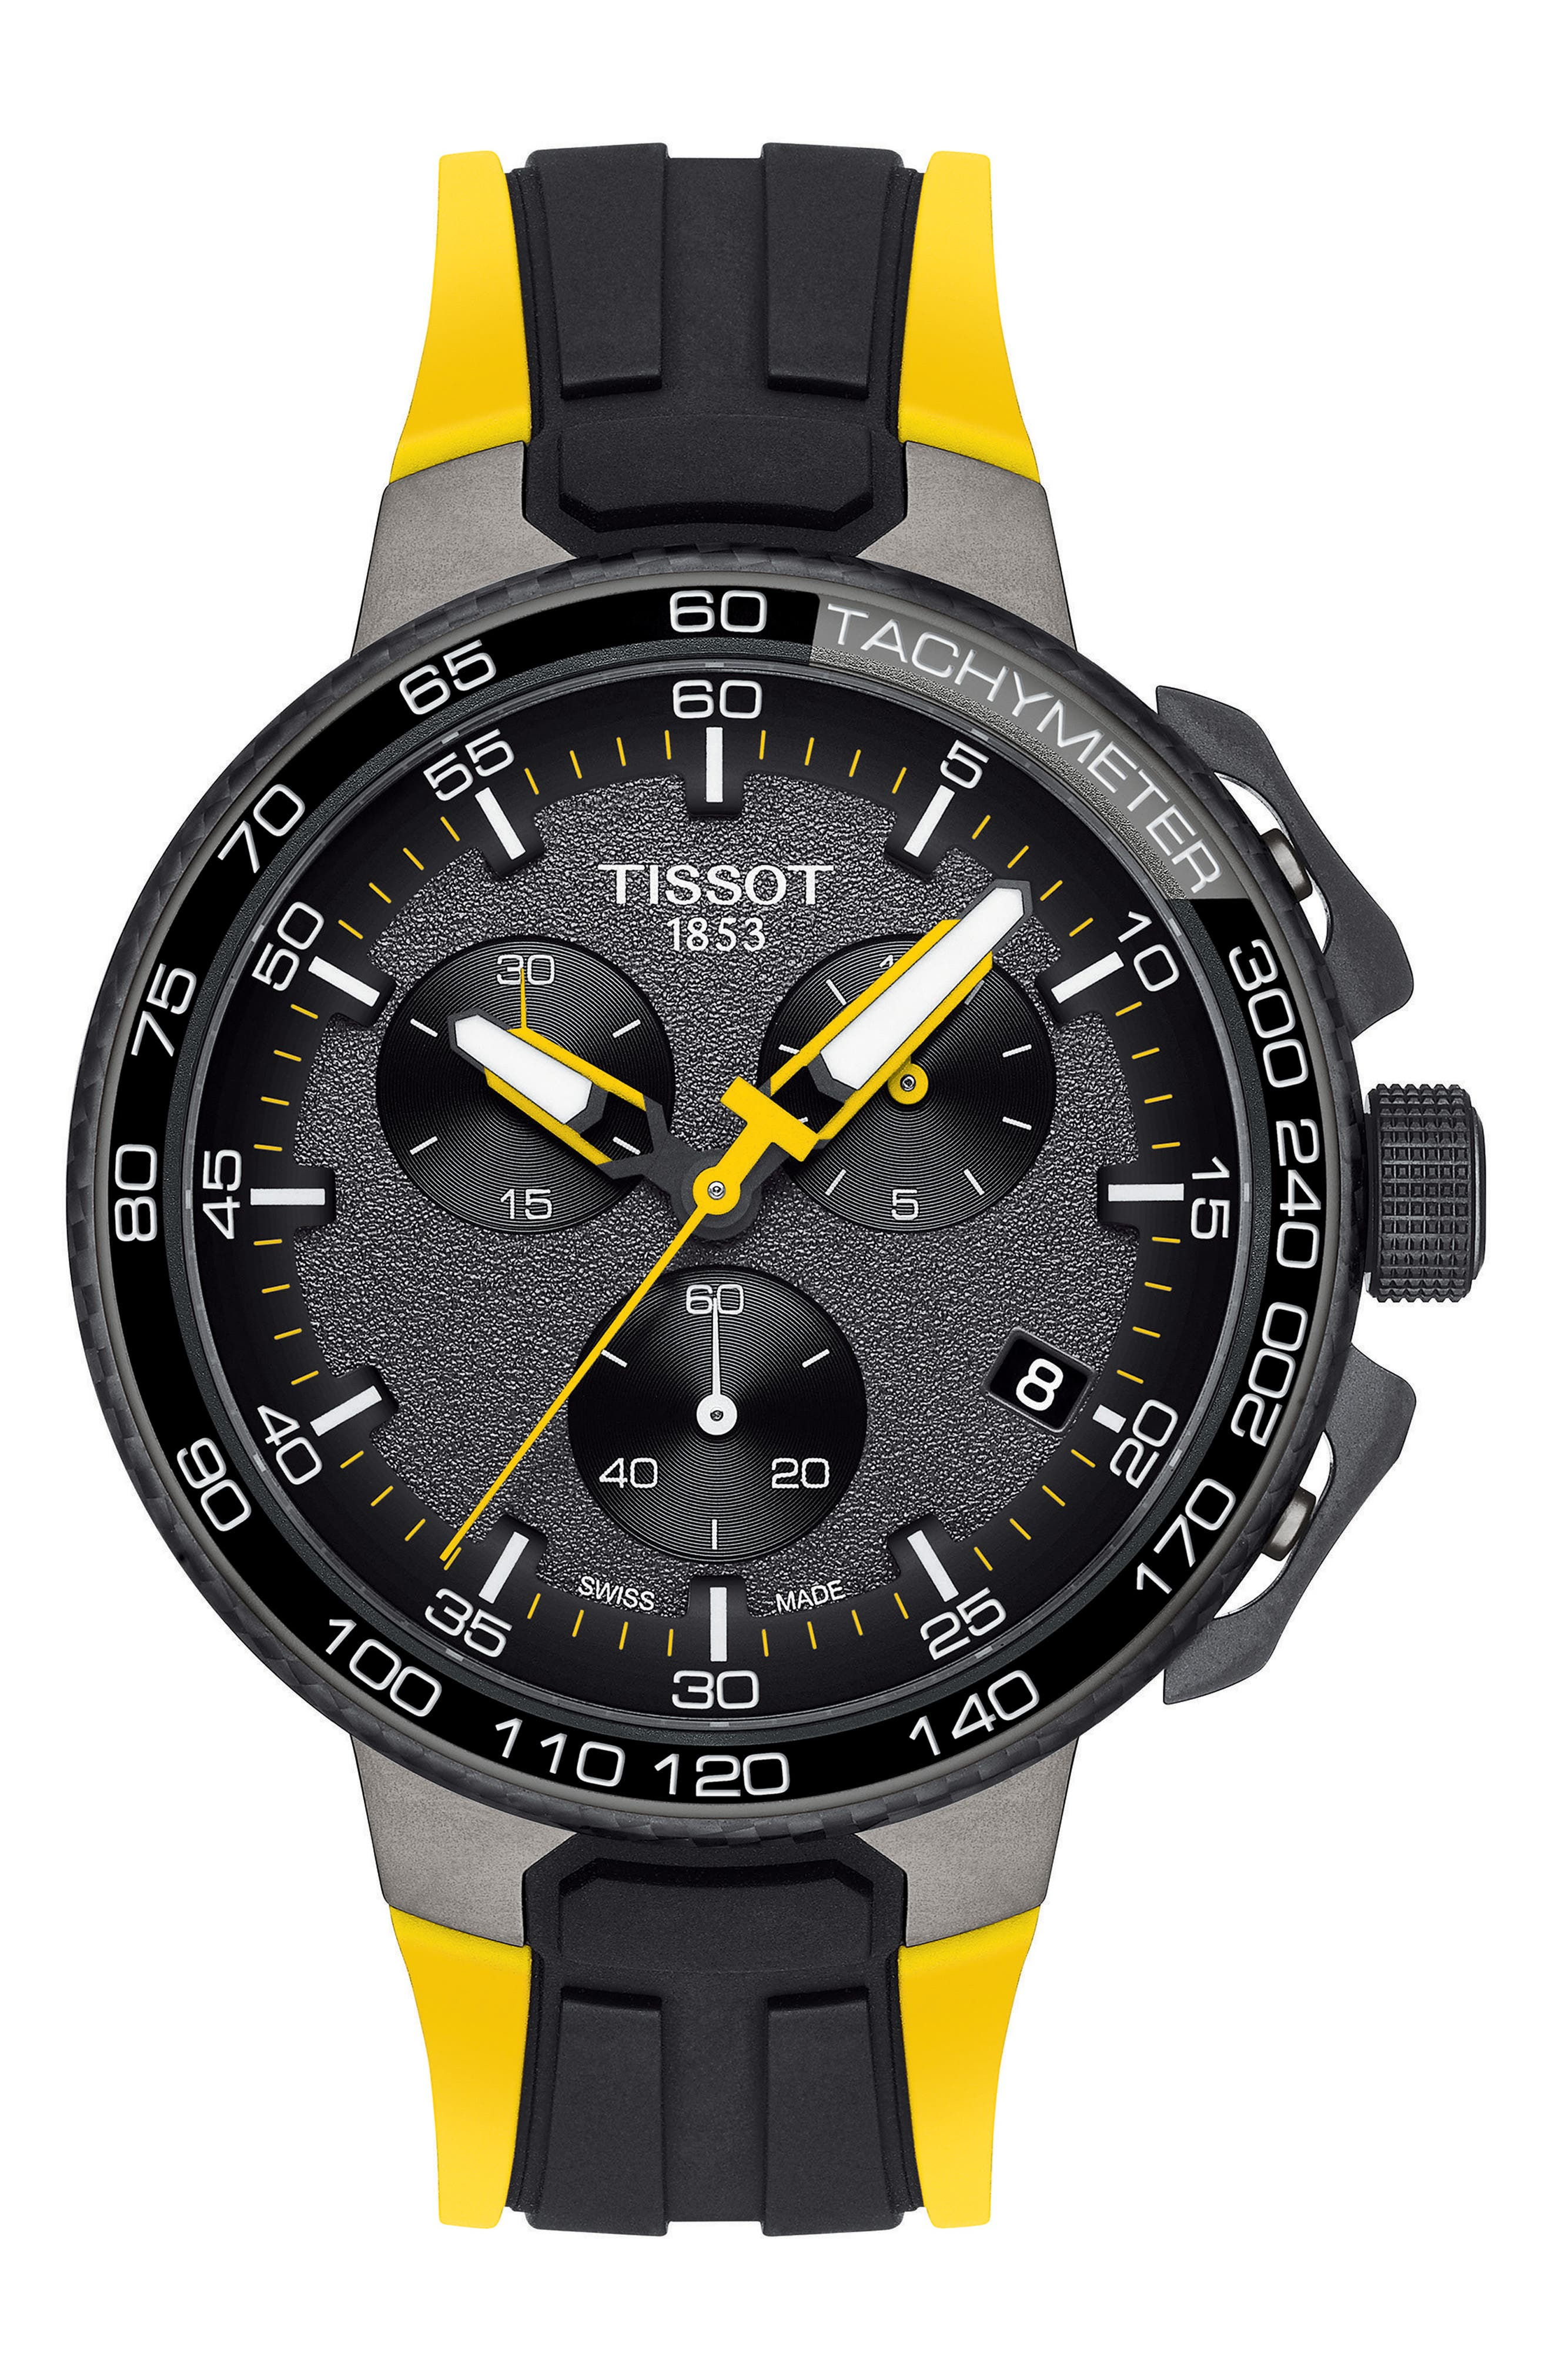 Alternate Image 1 Selected - Tissot T-Race Tour de France Chronograph Silicone Strap Watch, 45mm